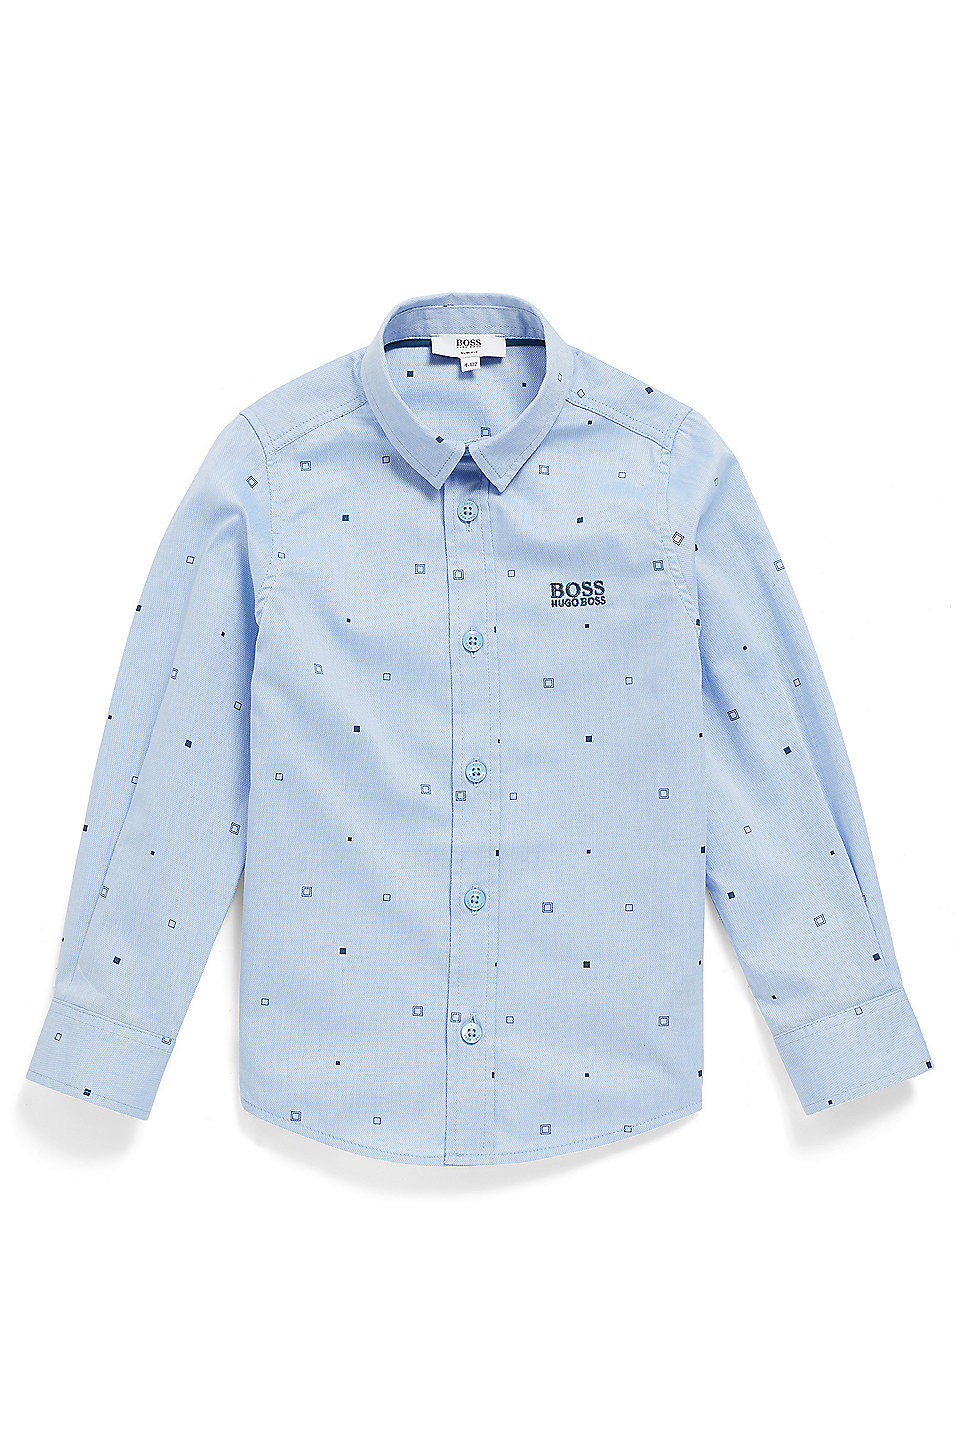 fe366ac0a BOSS - Kids' slim-fit shirt in printed cotton